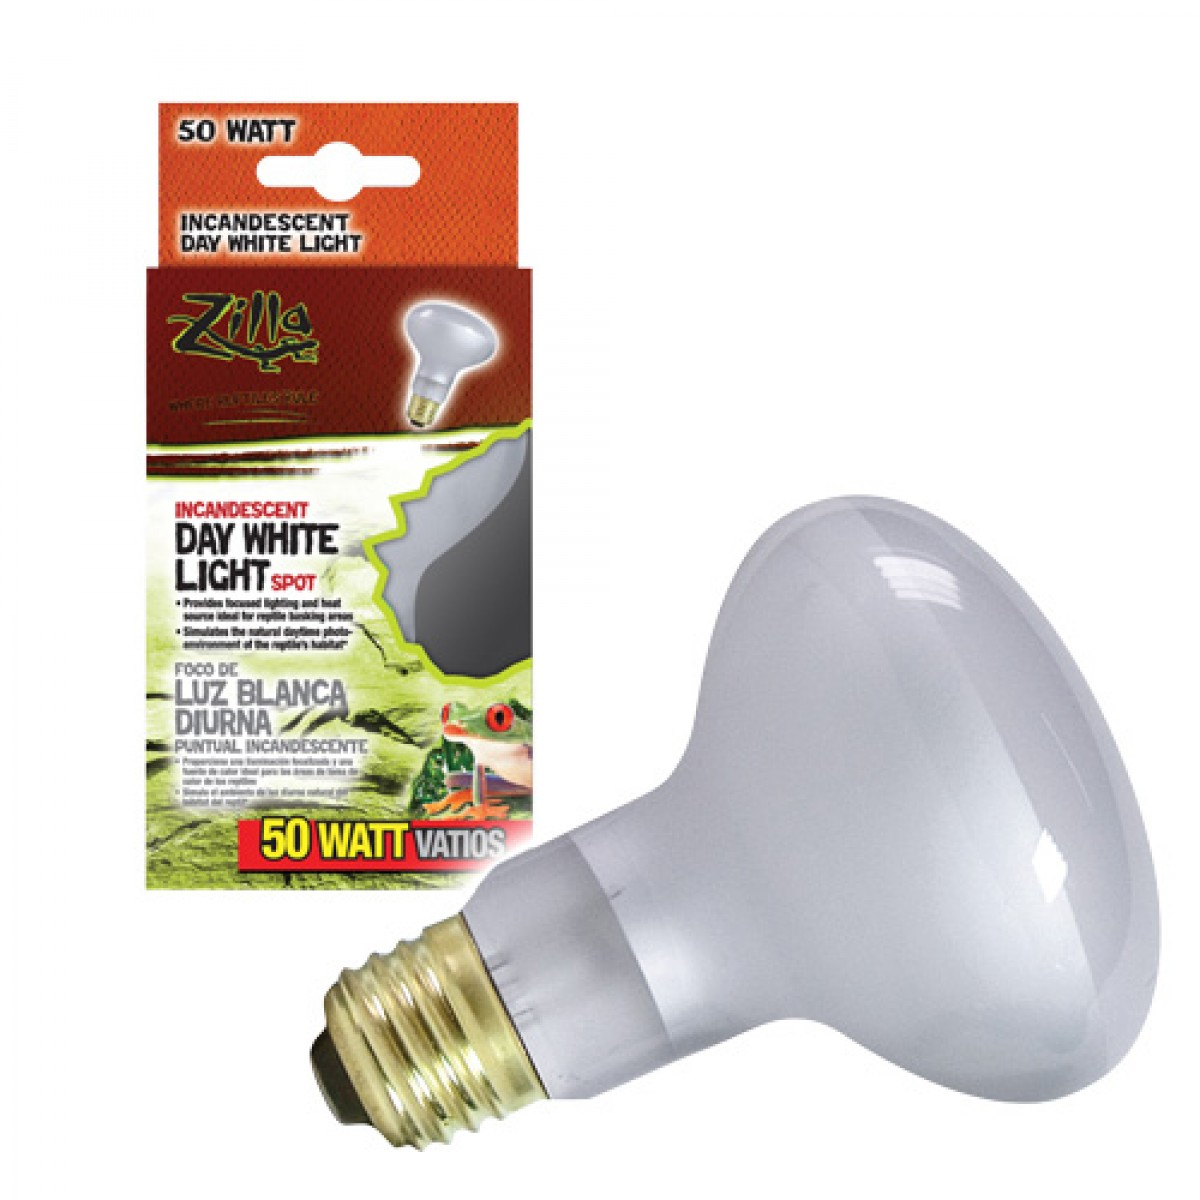 Zilla day white light incandescent spot lamps